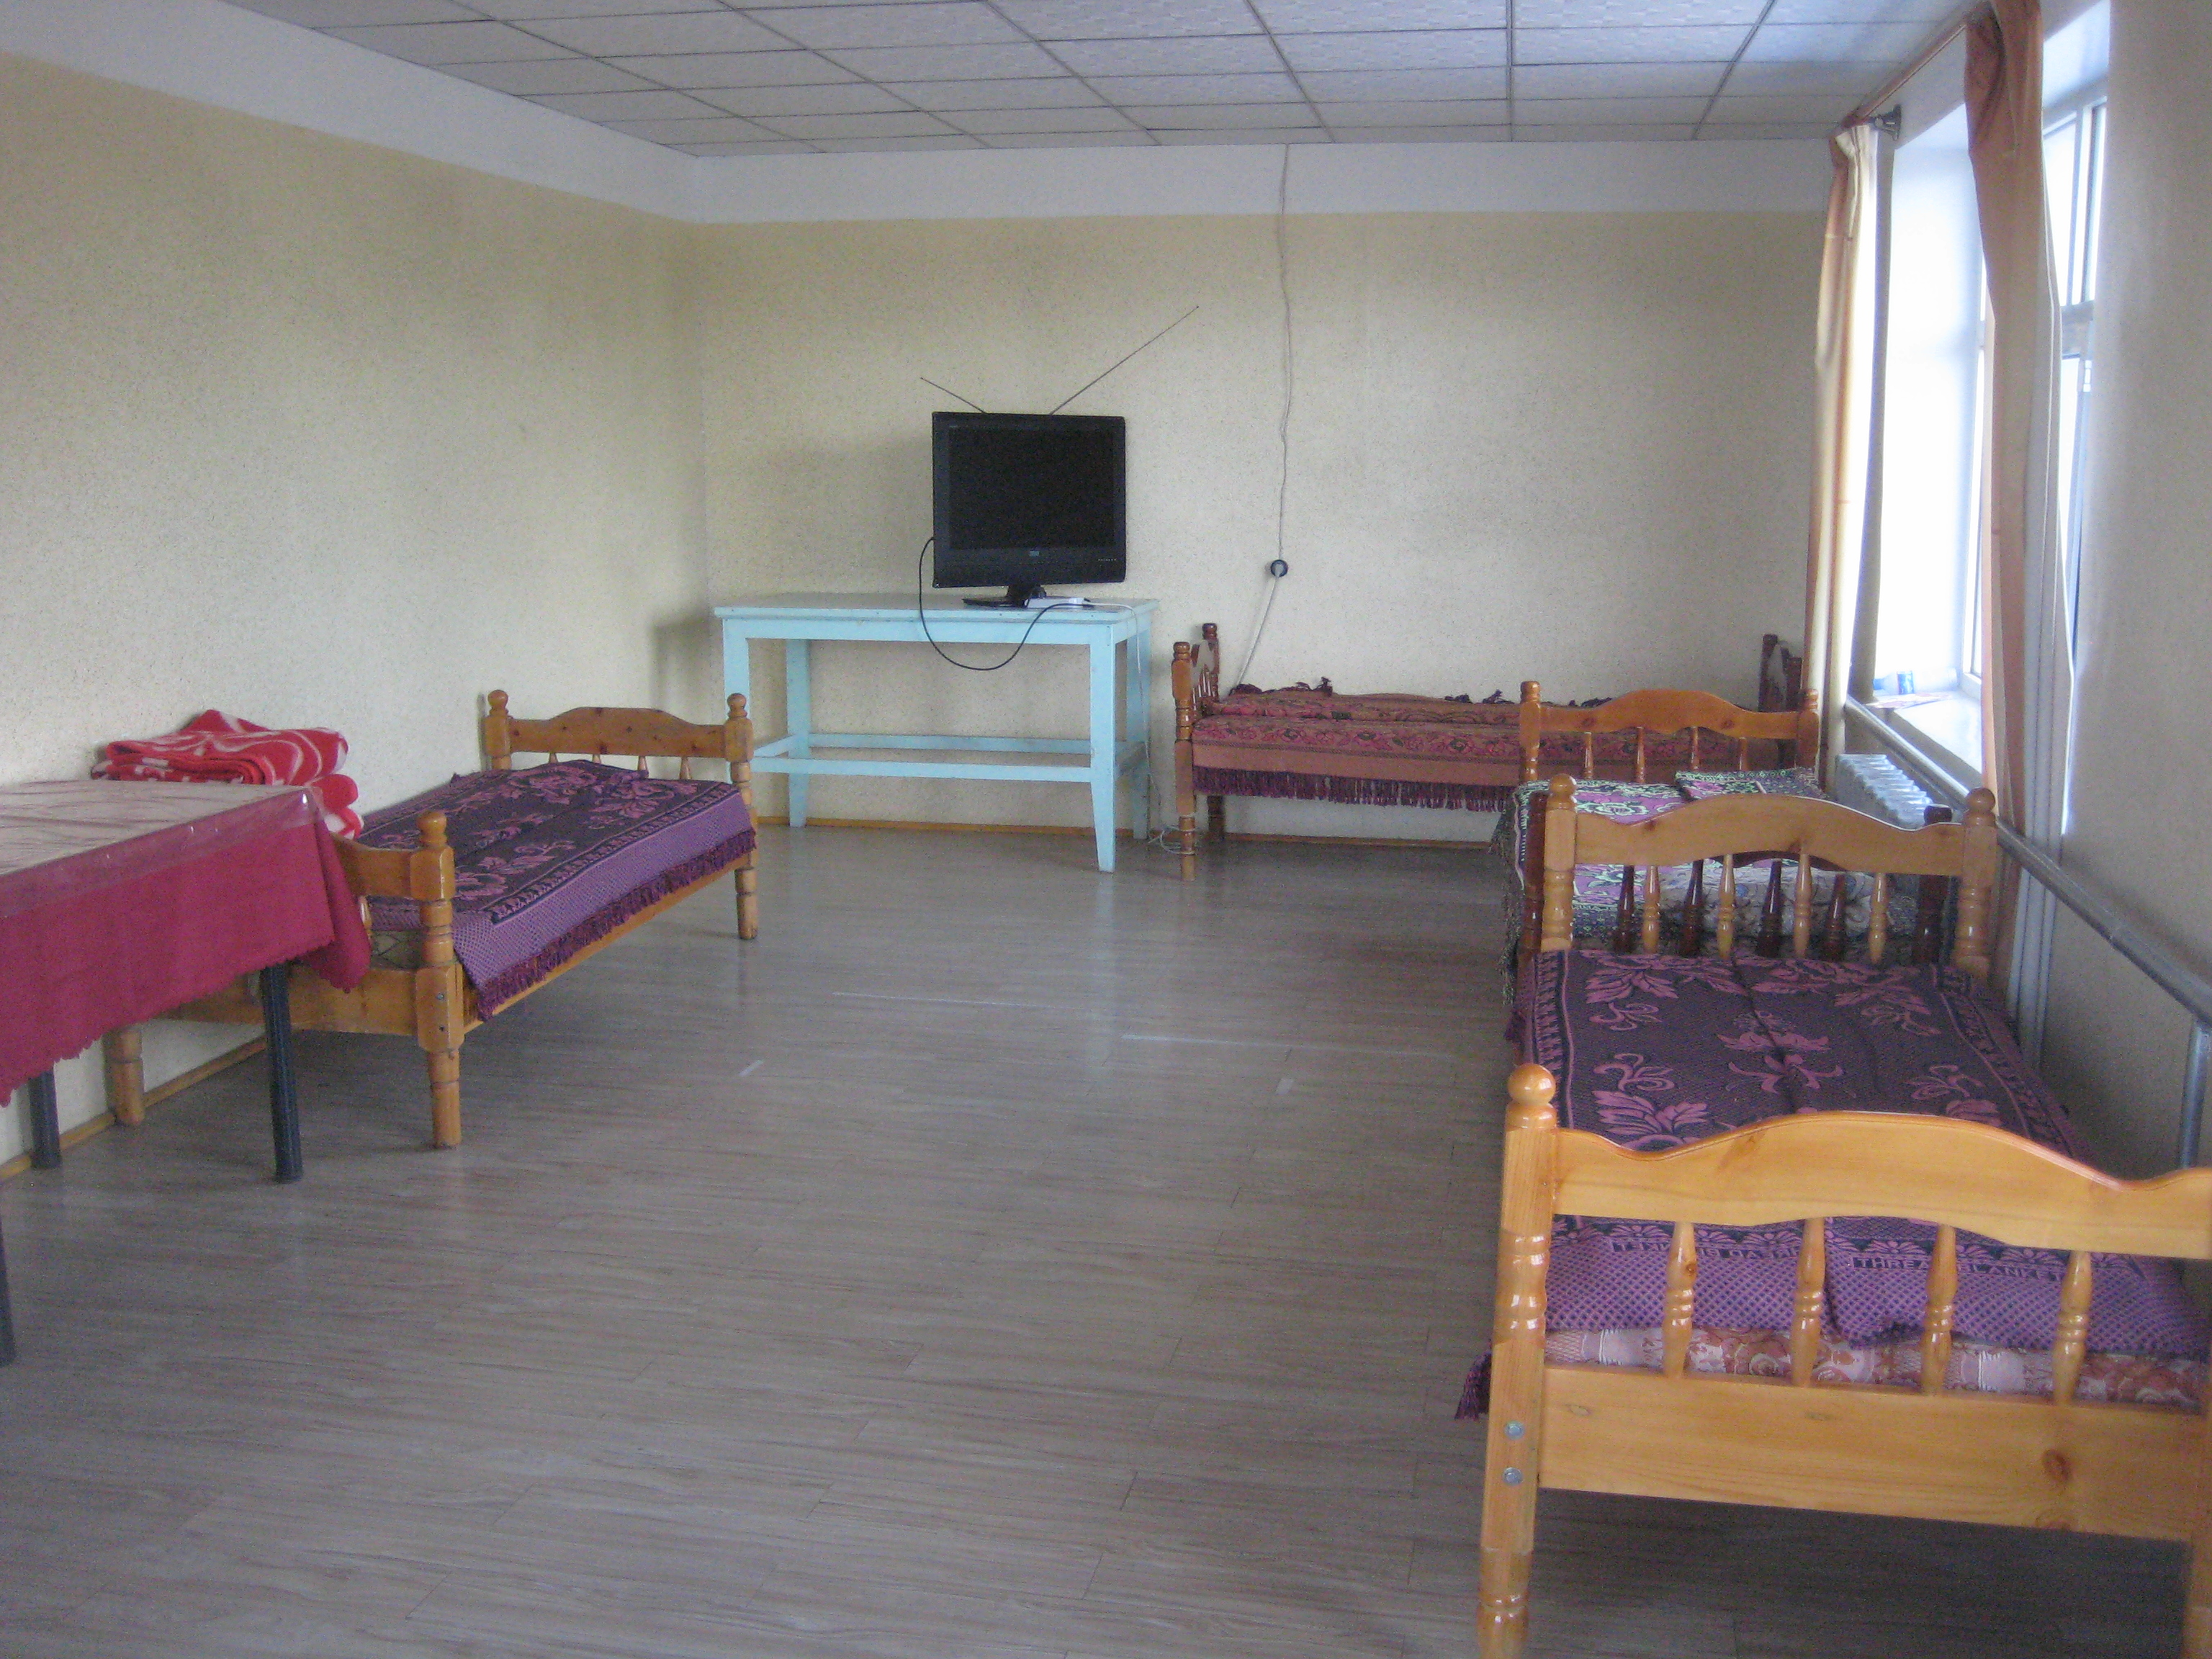 Hotel in Bat-Ulzii Soum - Inside view